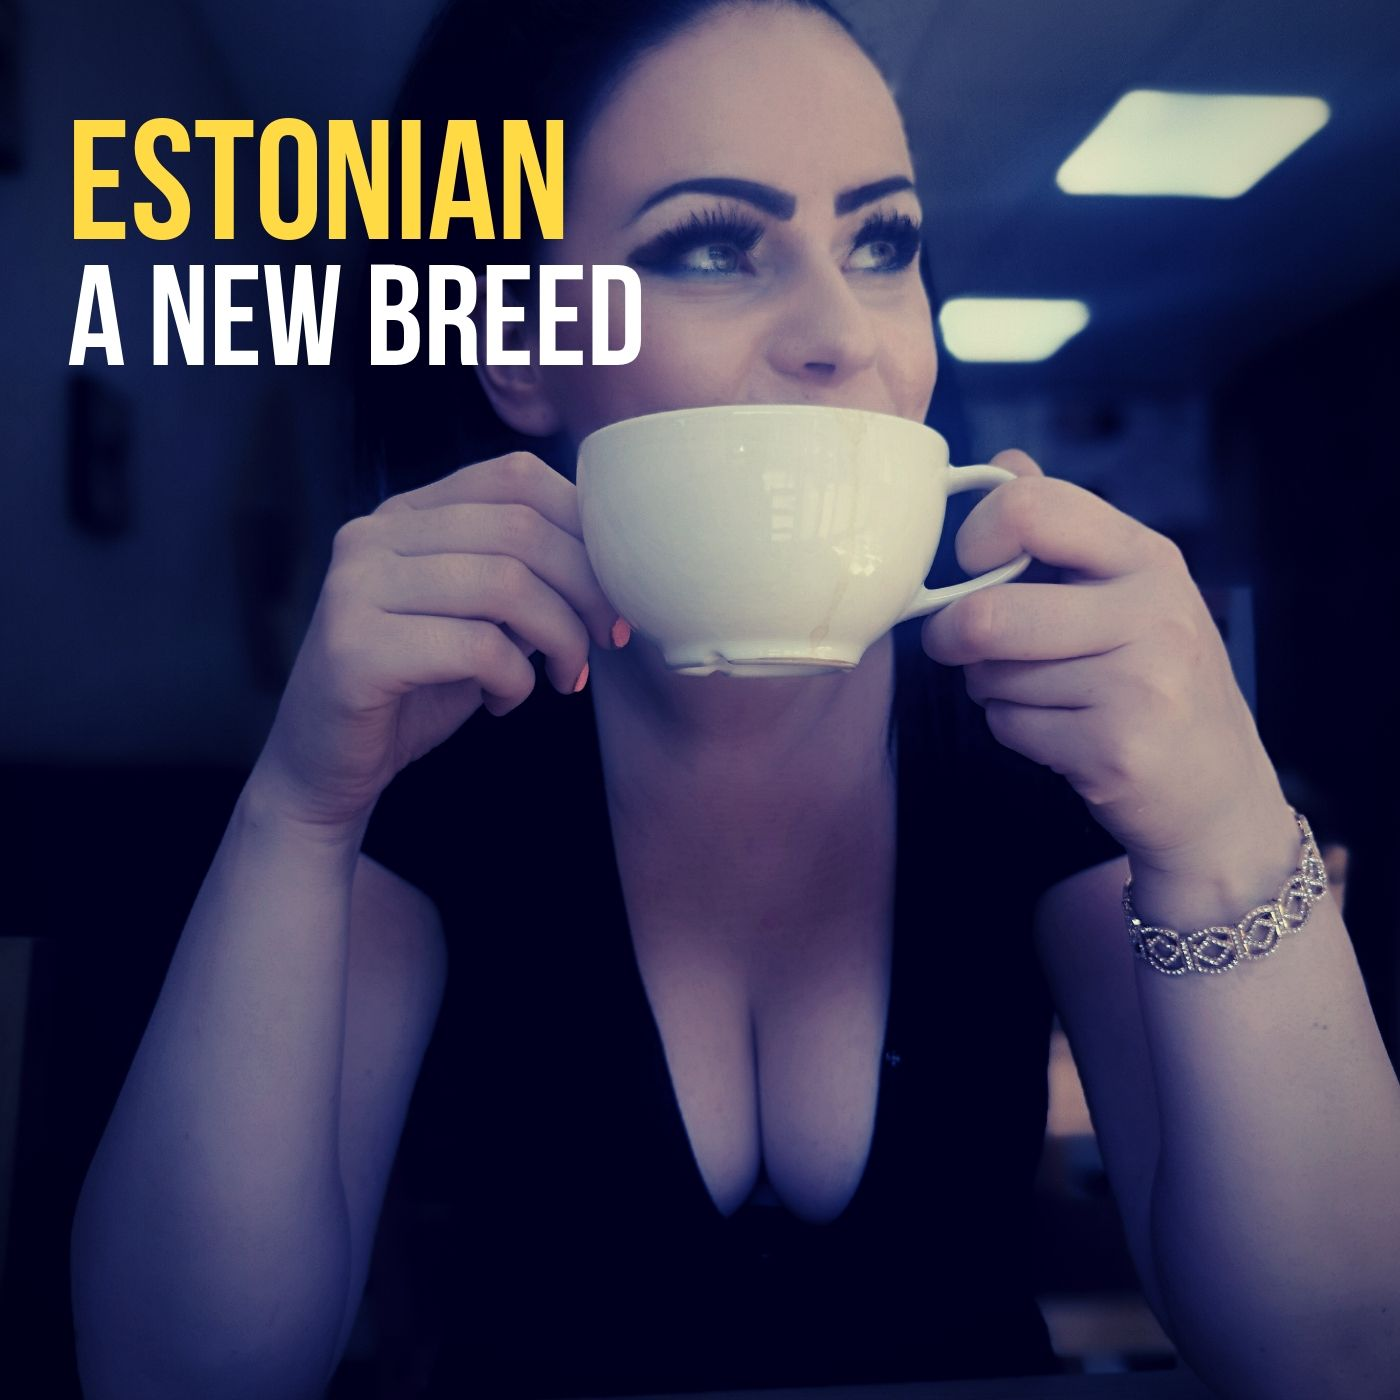 Estonian a new breed